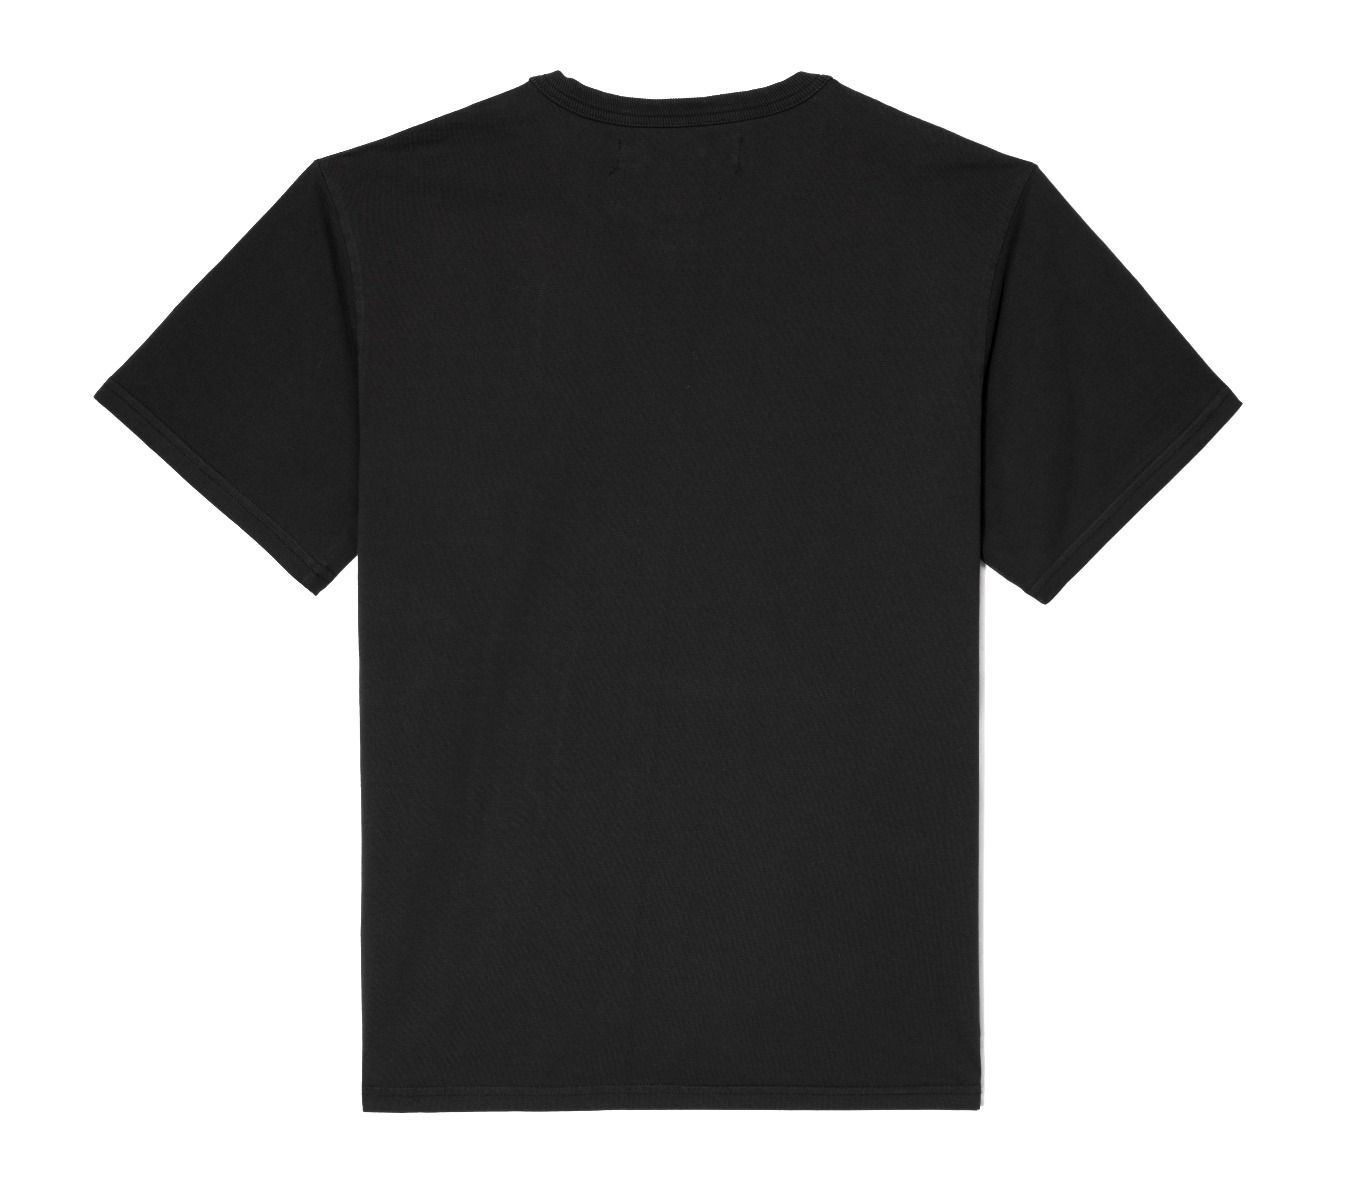 The Traviatta T-Shirt